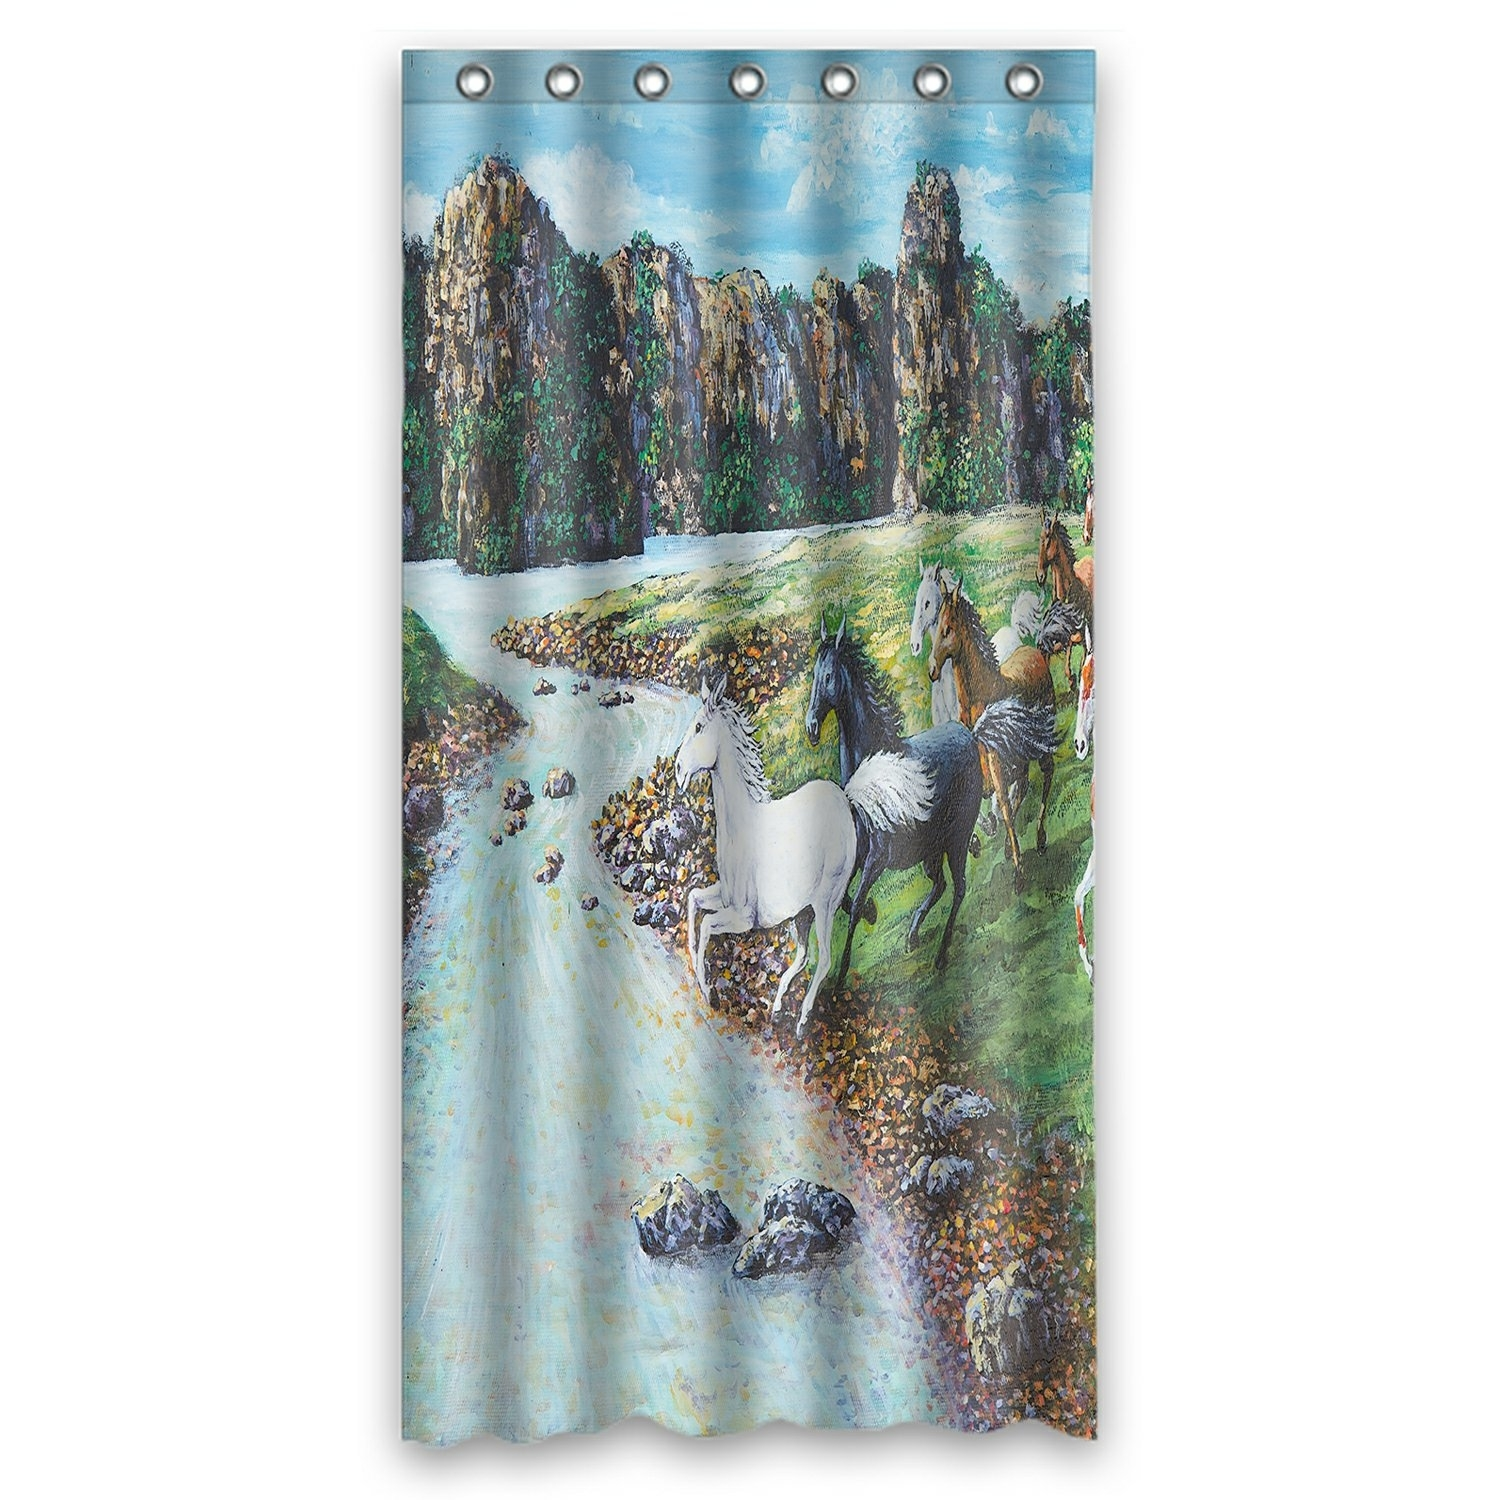 Oil Painting Landscape Shower Curtain, Animal Horses Crossing the River Shower Curtain 36x72 inch